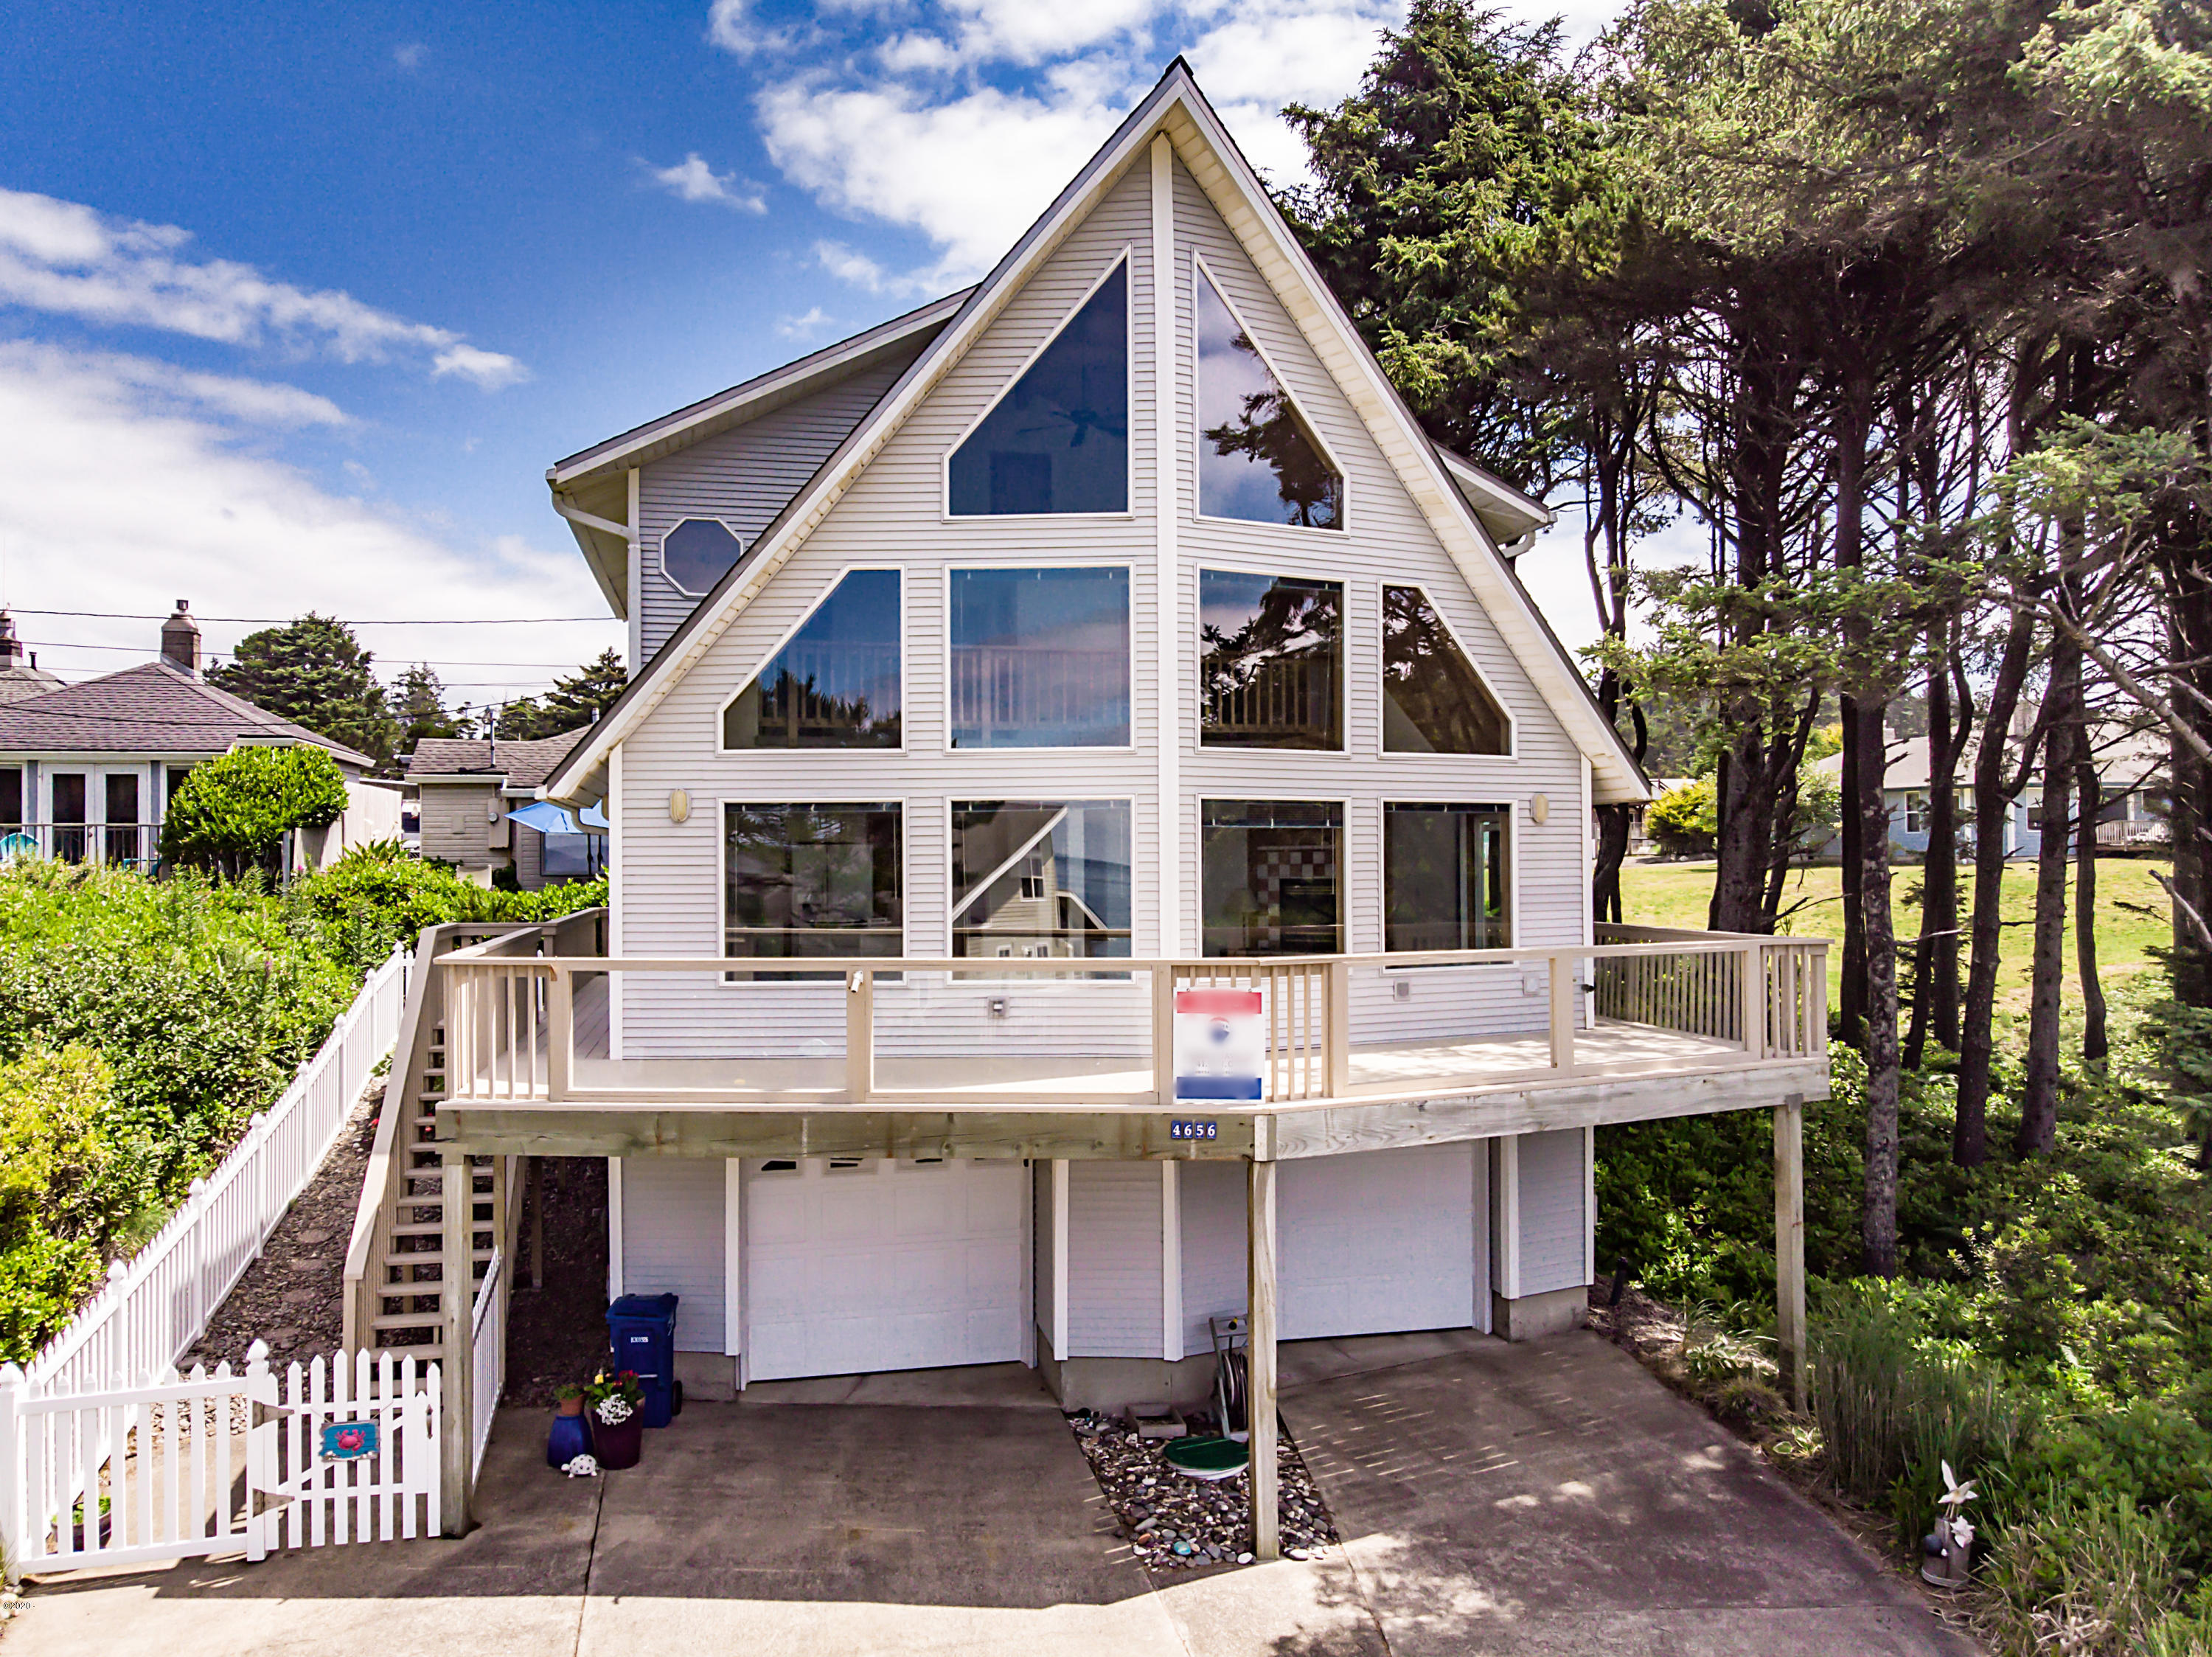 4656 Lincoln Ave, Depoe Bay, OR 97341 - 4656 Lincoln Ave - print-8